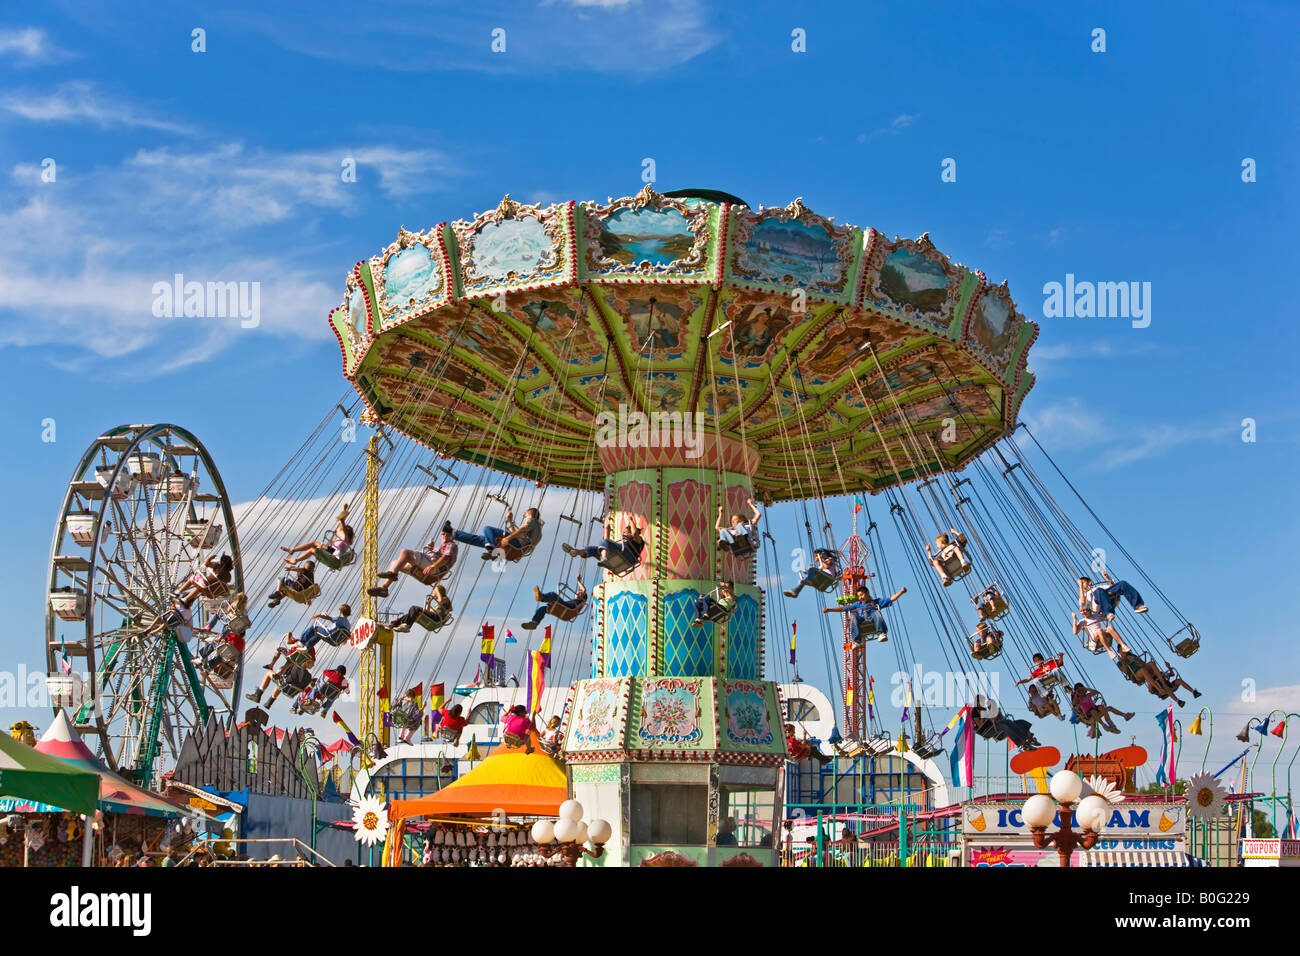 Carnival Swing Ride With Kids And Families Having Fun